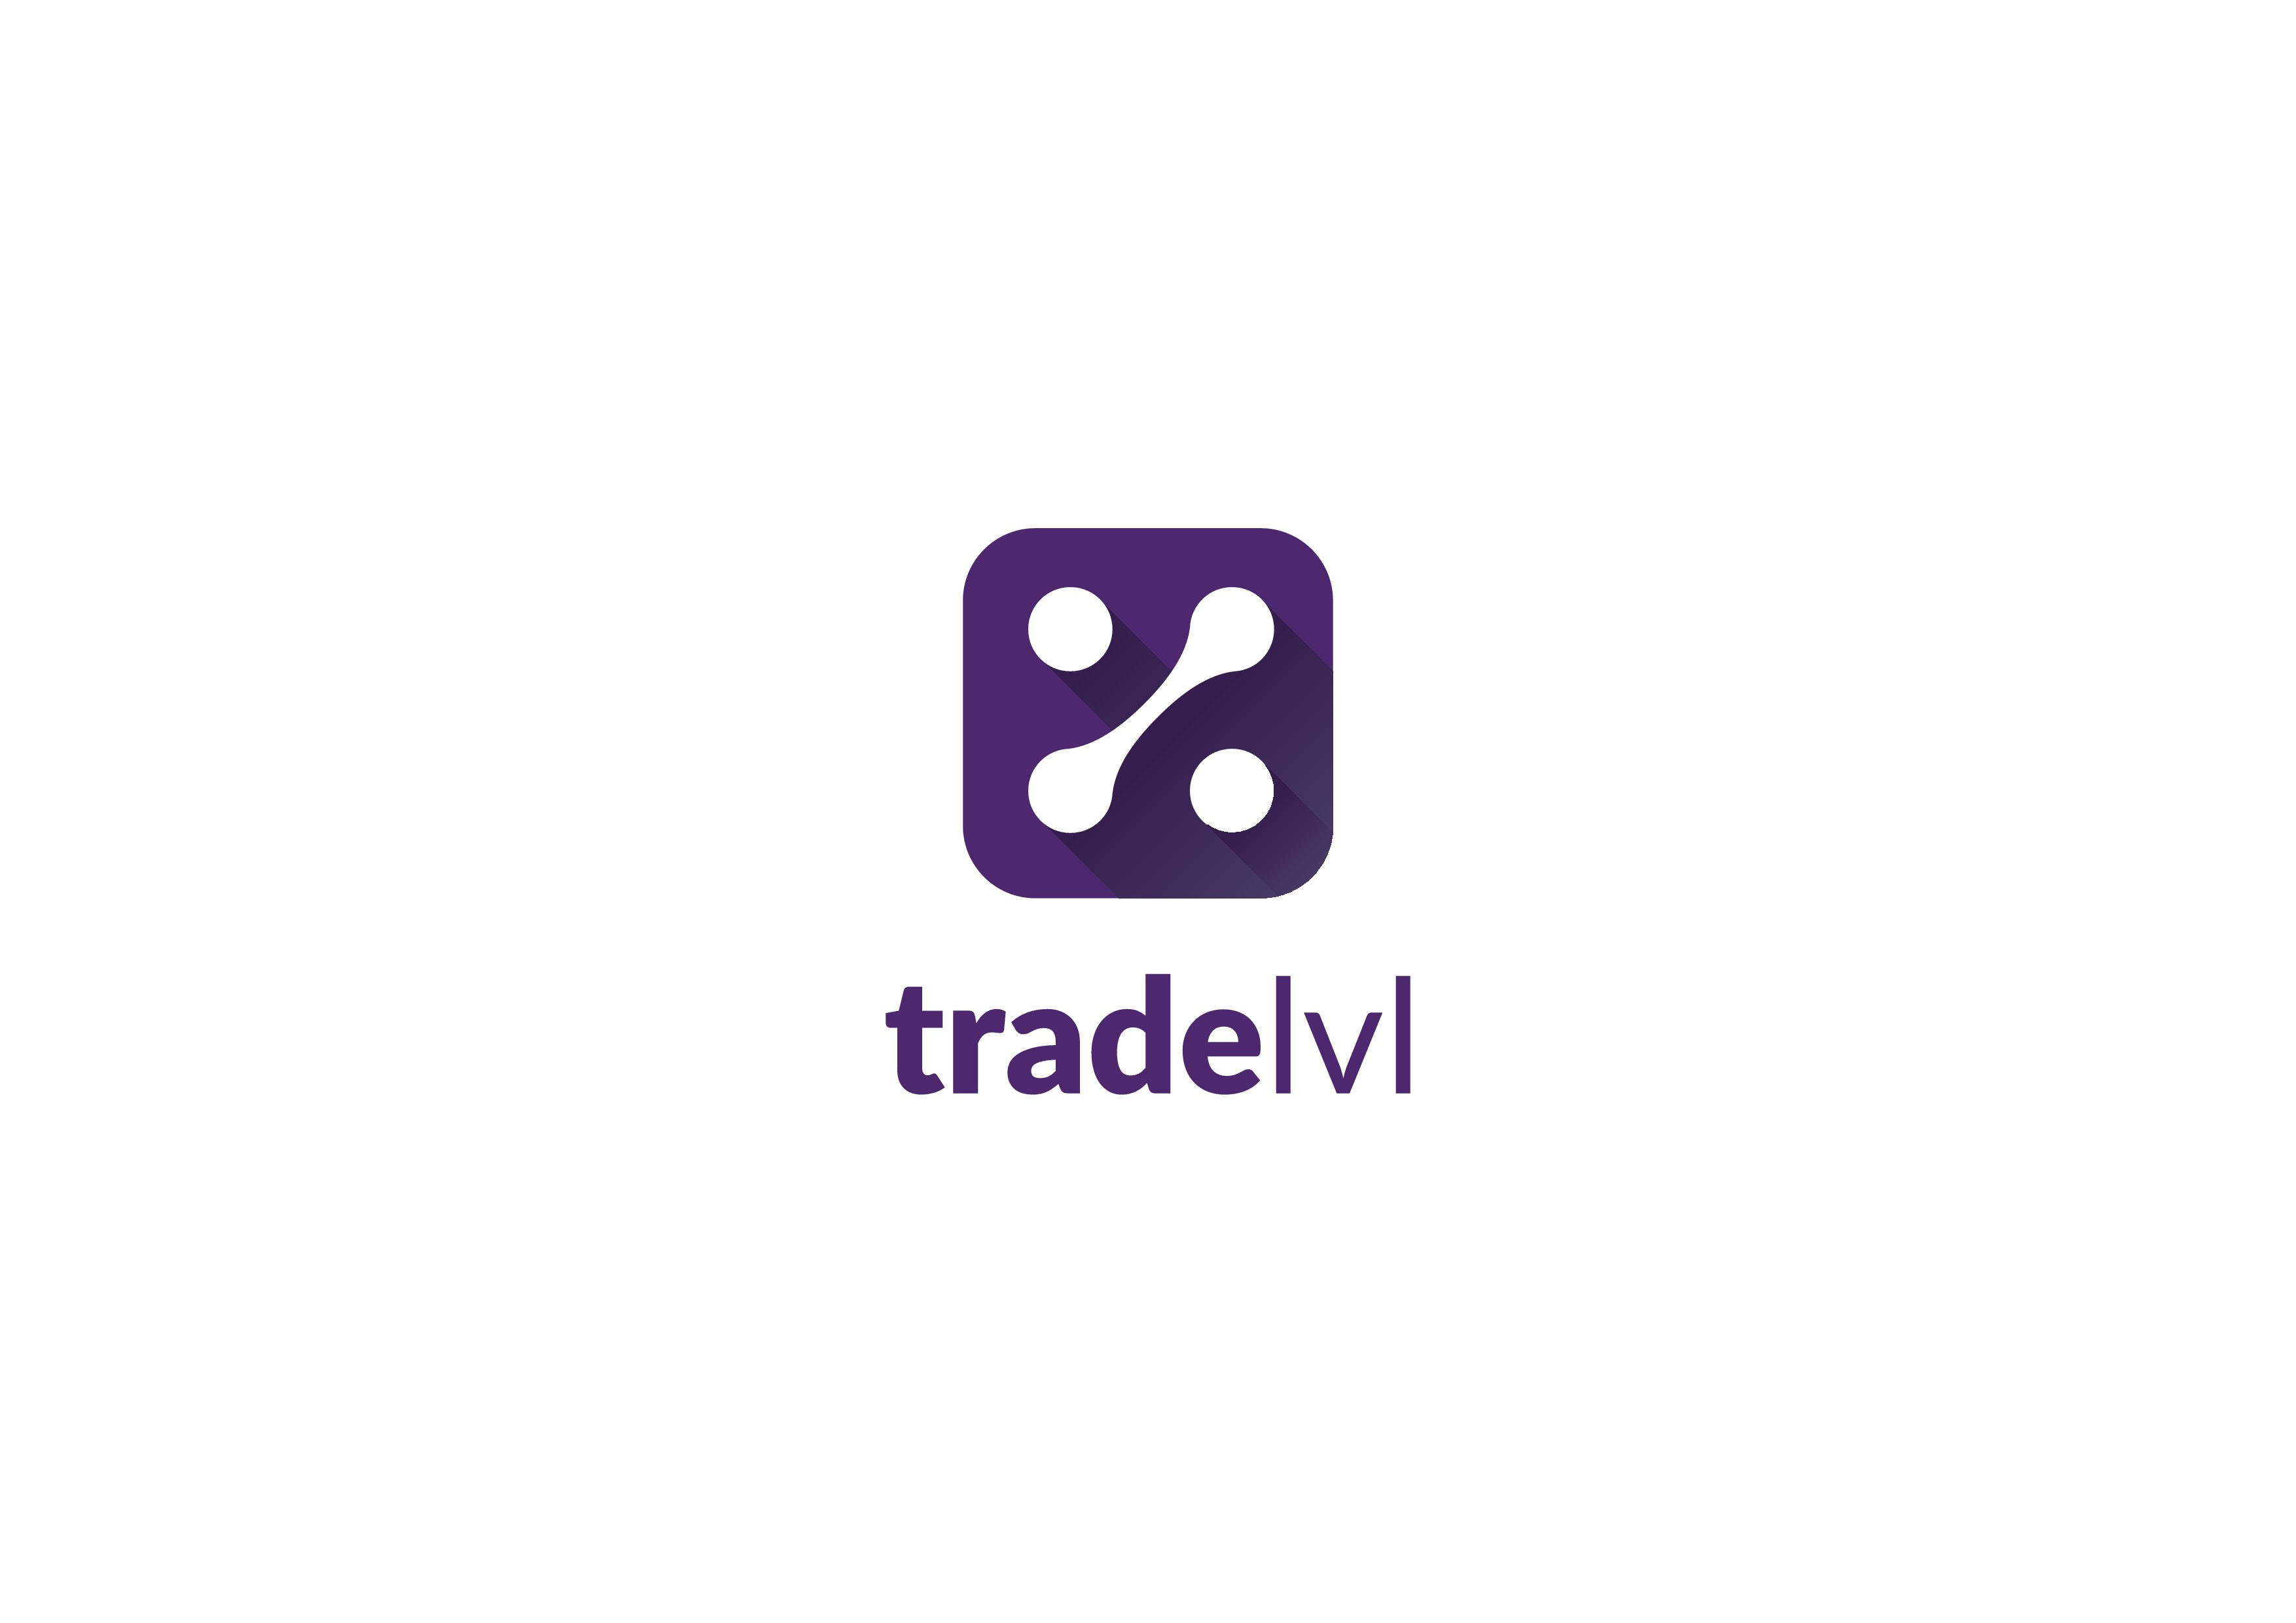 Create a Logo for tradelvl.com - a Website/App to Buy, Sell & Trade Video Games & Electronics